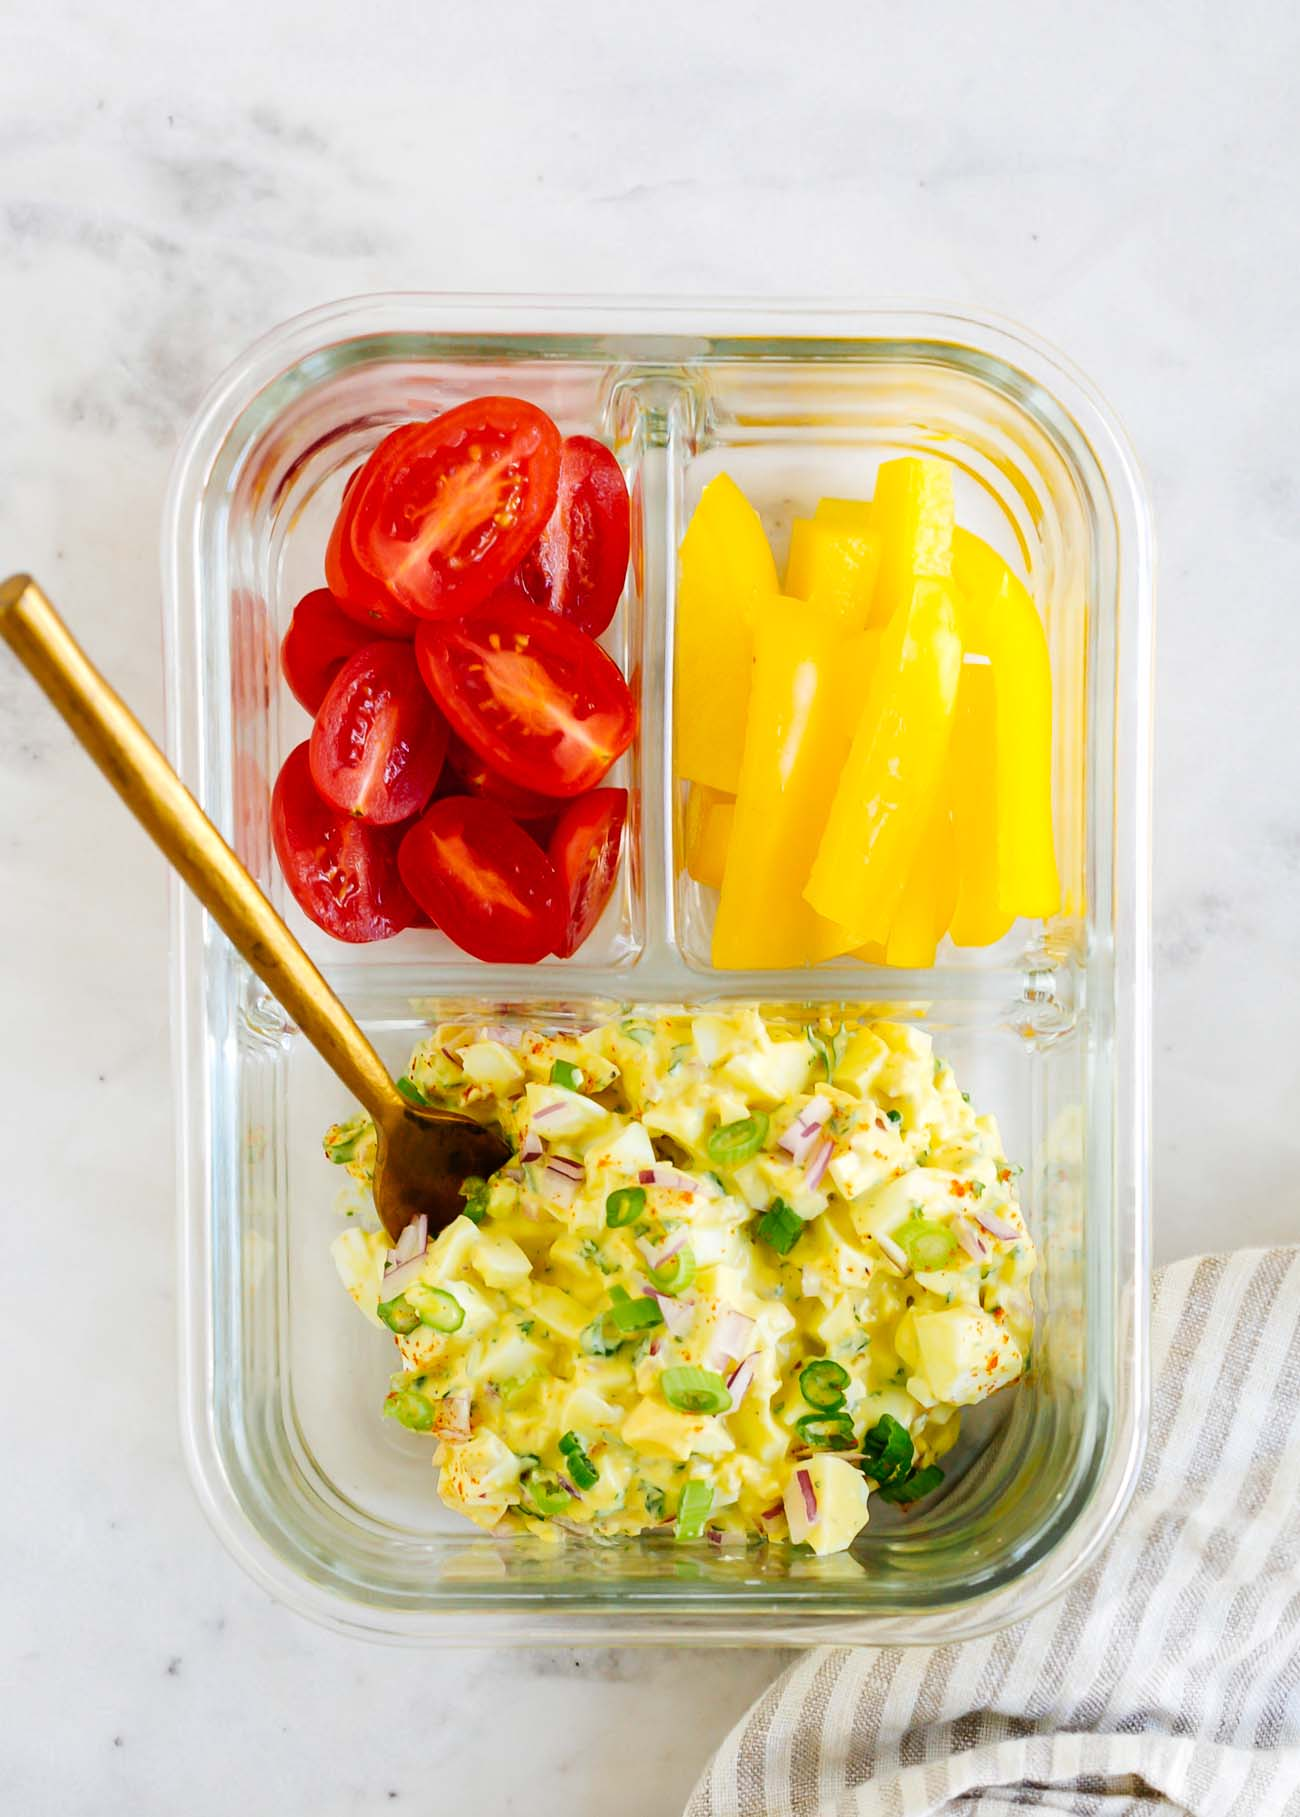 Meal prep container with egg salad, cherry tomatoes, and bell peppers.